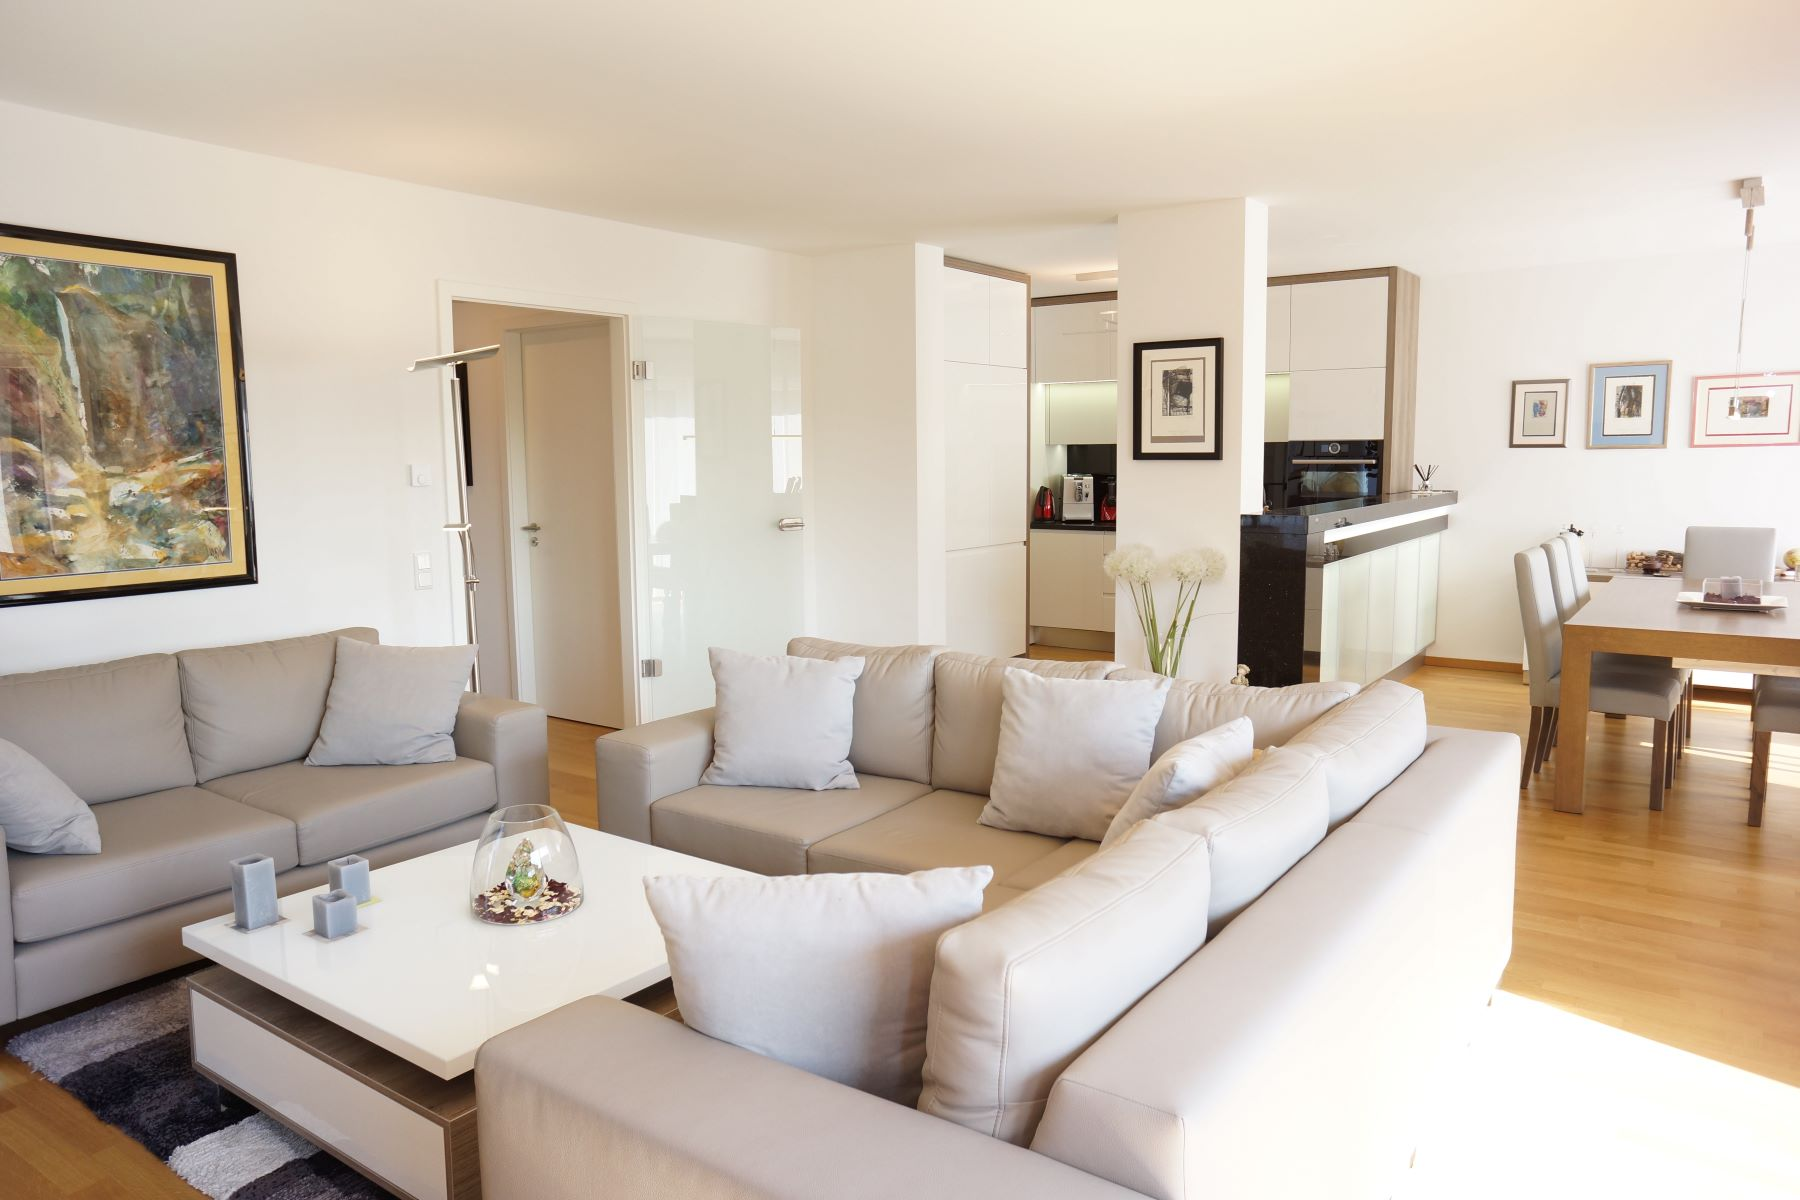 Condominiums for Sale at Exclusive, Very Well Equipped Condominium Dusseldorf, Nordrhein-Westfalen 40470 Germany